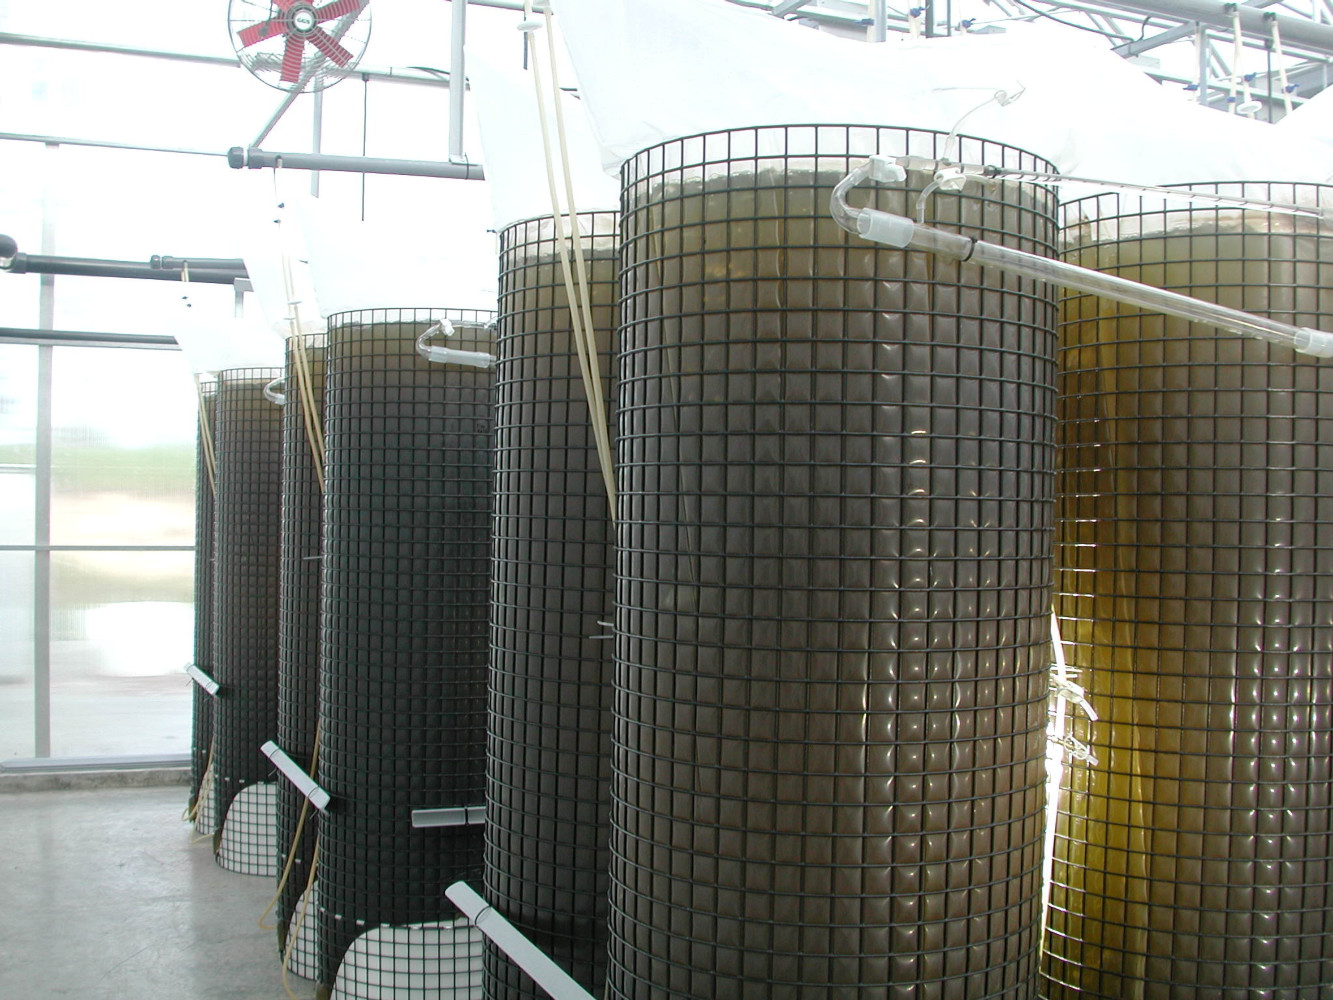 BAY SHELLFISH CO. DESIGNS, PRODUCES, INSTALLS & HANDLES TRAINING FOR SEACAPS CONTINUOUS MICROALGAE SYSTEMS  THE ORIGINAL AND LEADING SYSTEM GLOBALLY